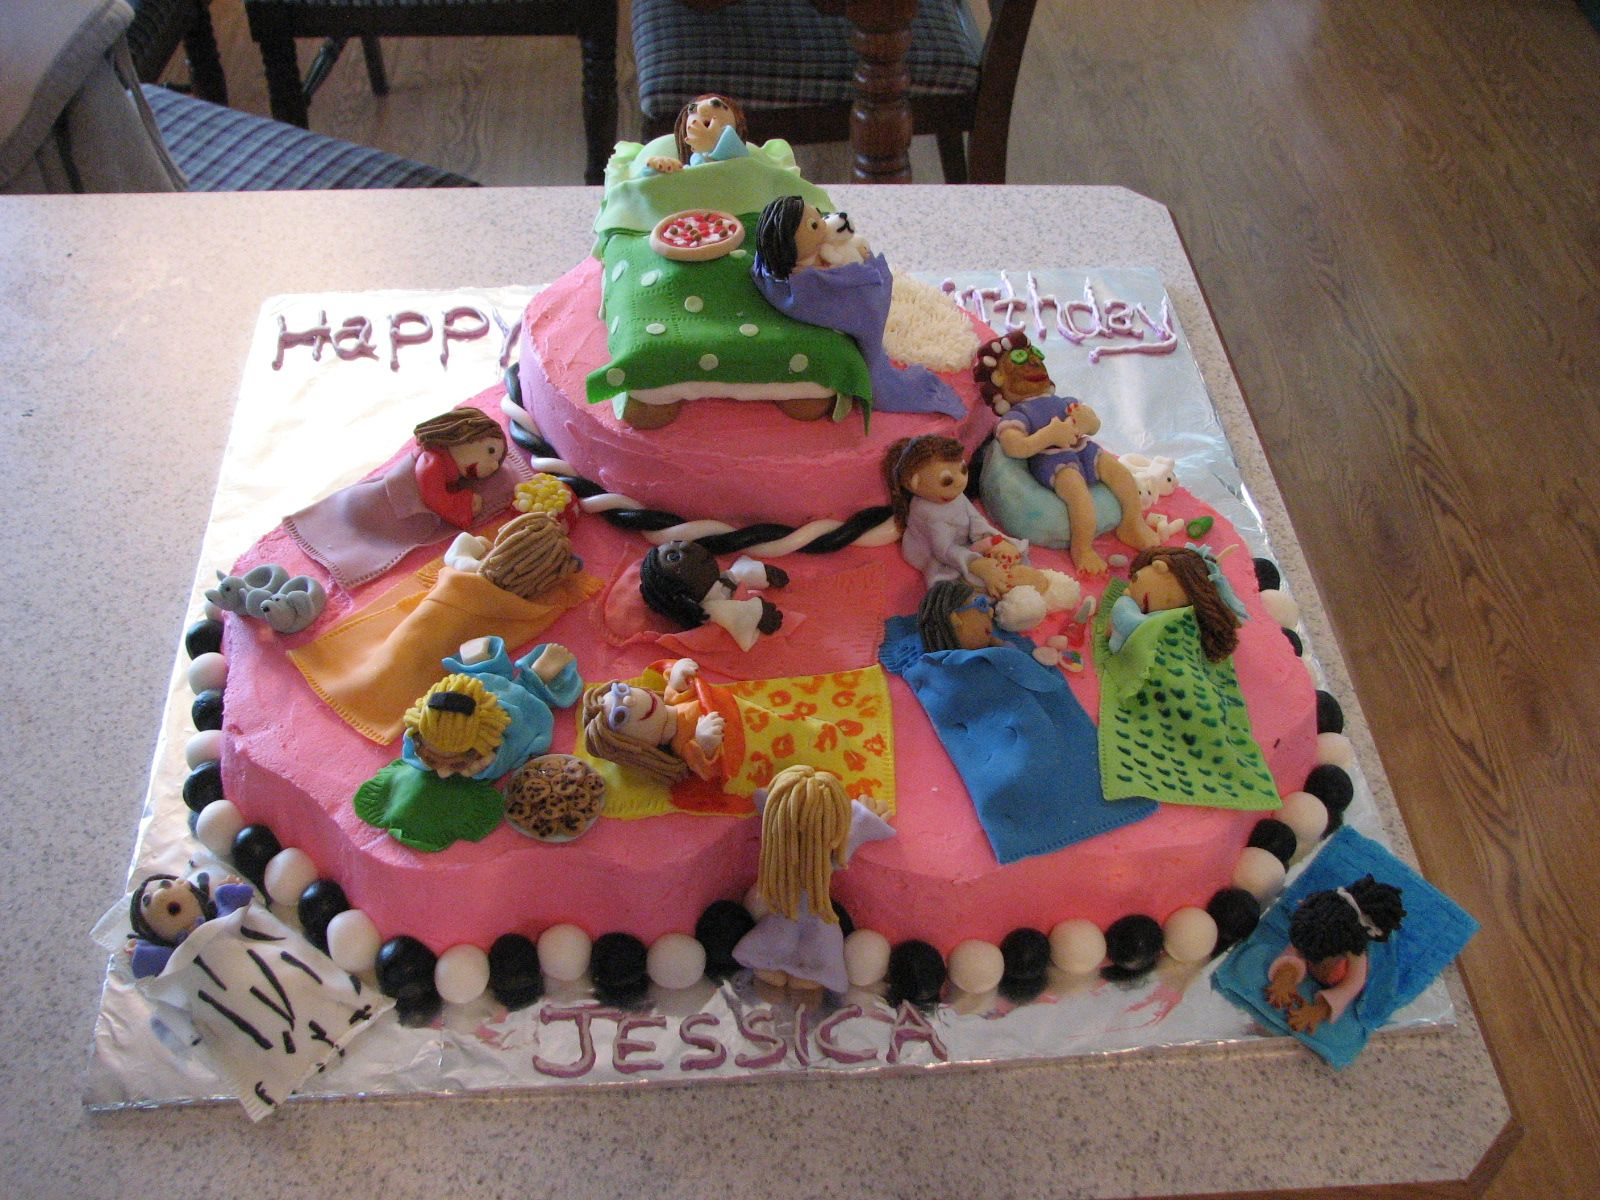 Sleepover Birthday Cake Made Each Girl That Came To The Party It